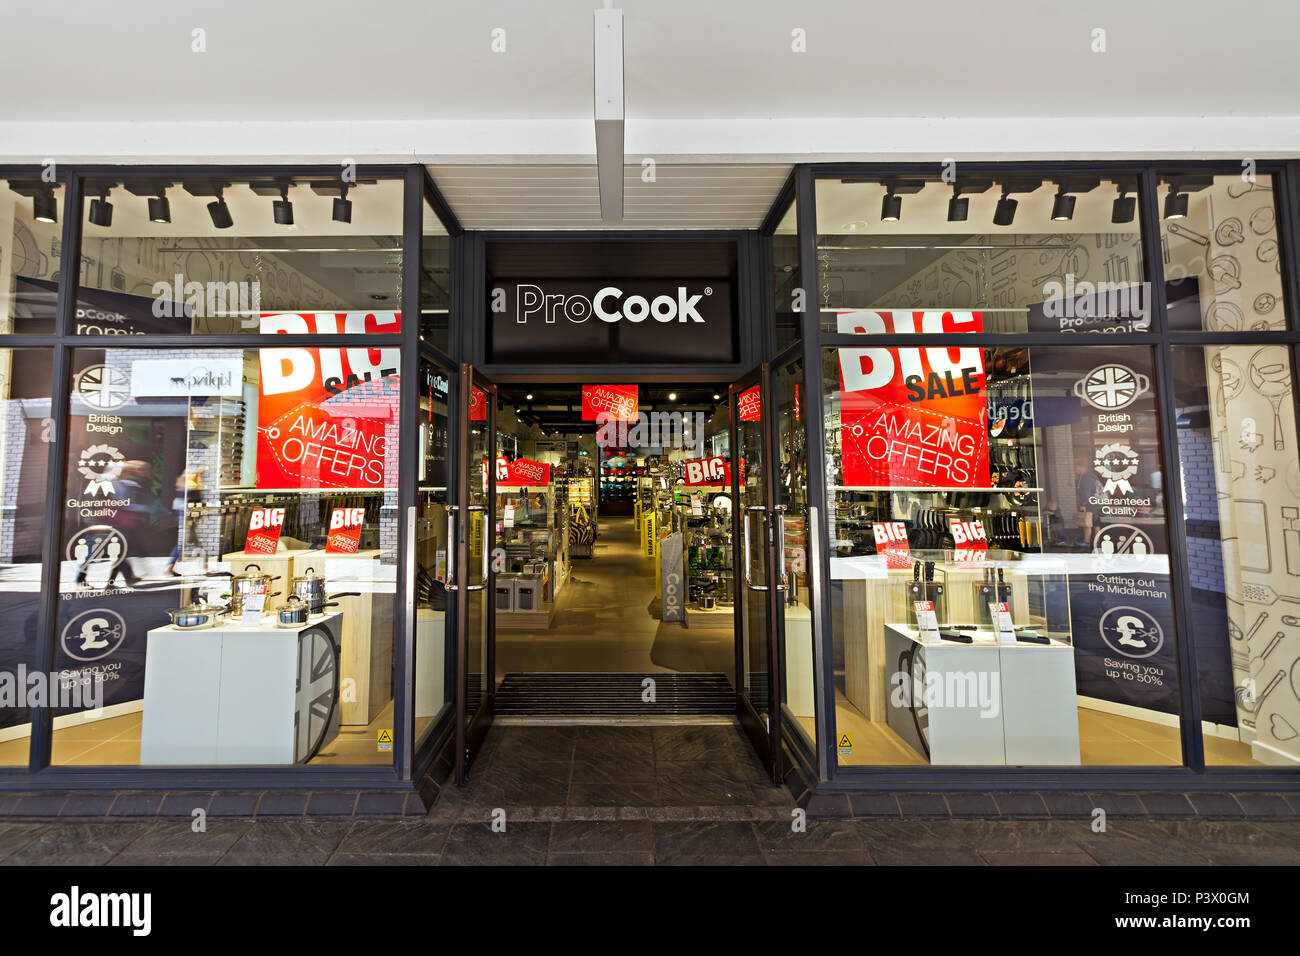 a9f8fdcb05c Shop frontage of the Pro Cook store at the Cheshire Oaks Designer Outlet,  Ellesmere Port